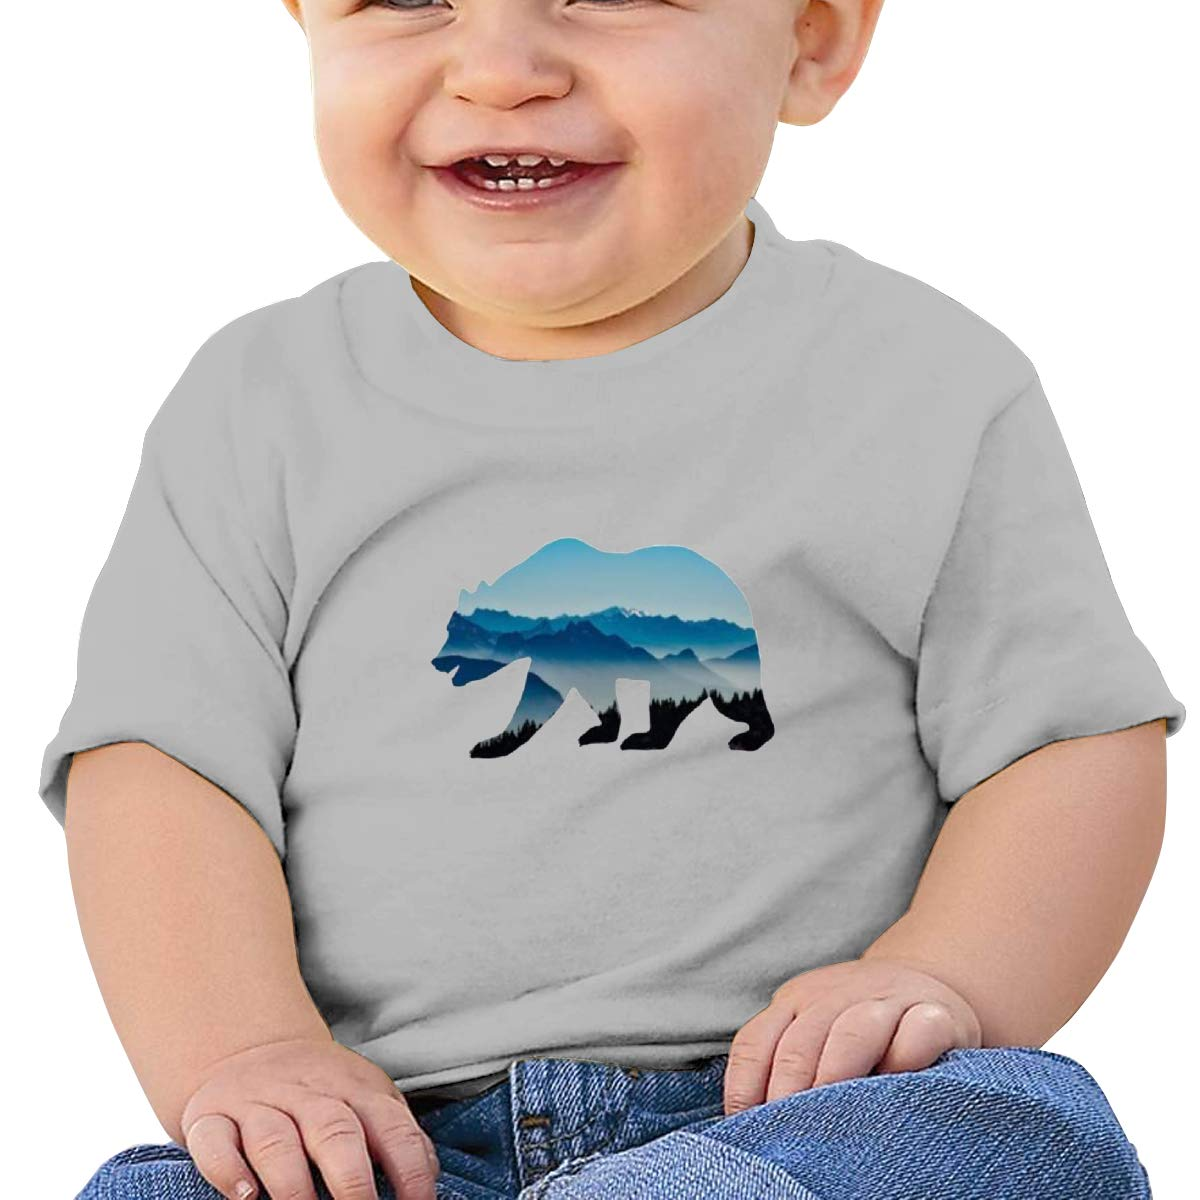 JVNSS Bears Mountains Baby T-Shirt Little Baby Cotton T Shirts Crew Neck Graphic T-Shirt for 6M-2T Baby